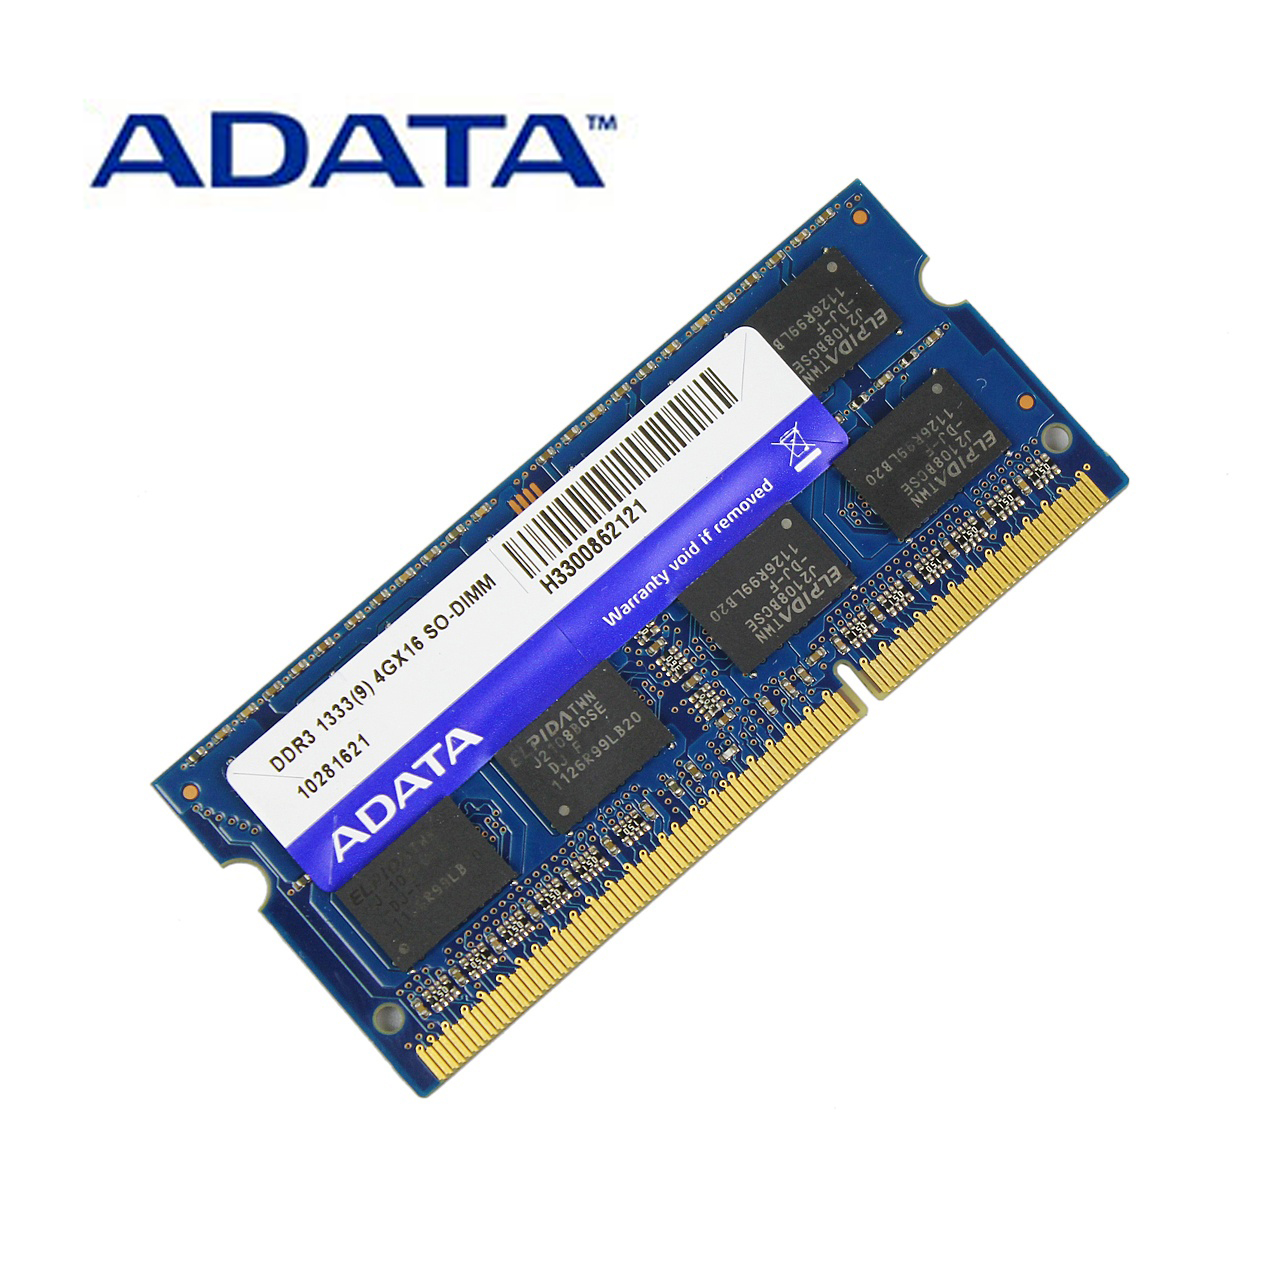 ADATA <font><b>DDR3</b></font> 1.5V 2GB 4GB 8GB 1333MHz Ram Memory SO-DIMM 204 Pin PC3-10600 For Lenovo ThinkPad SONY Acer <font><b>SAMSUNG</b></font> HP Laptop RAMs image